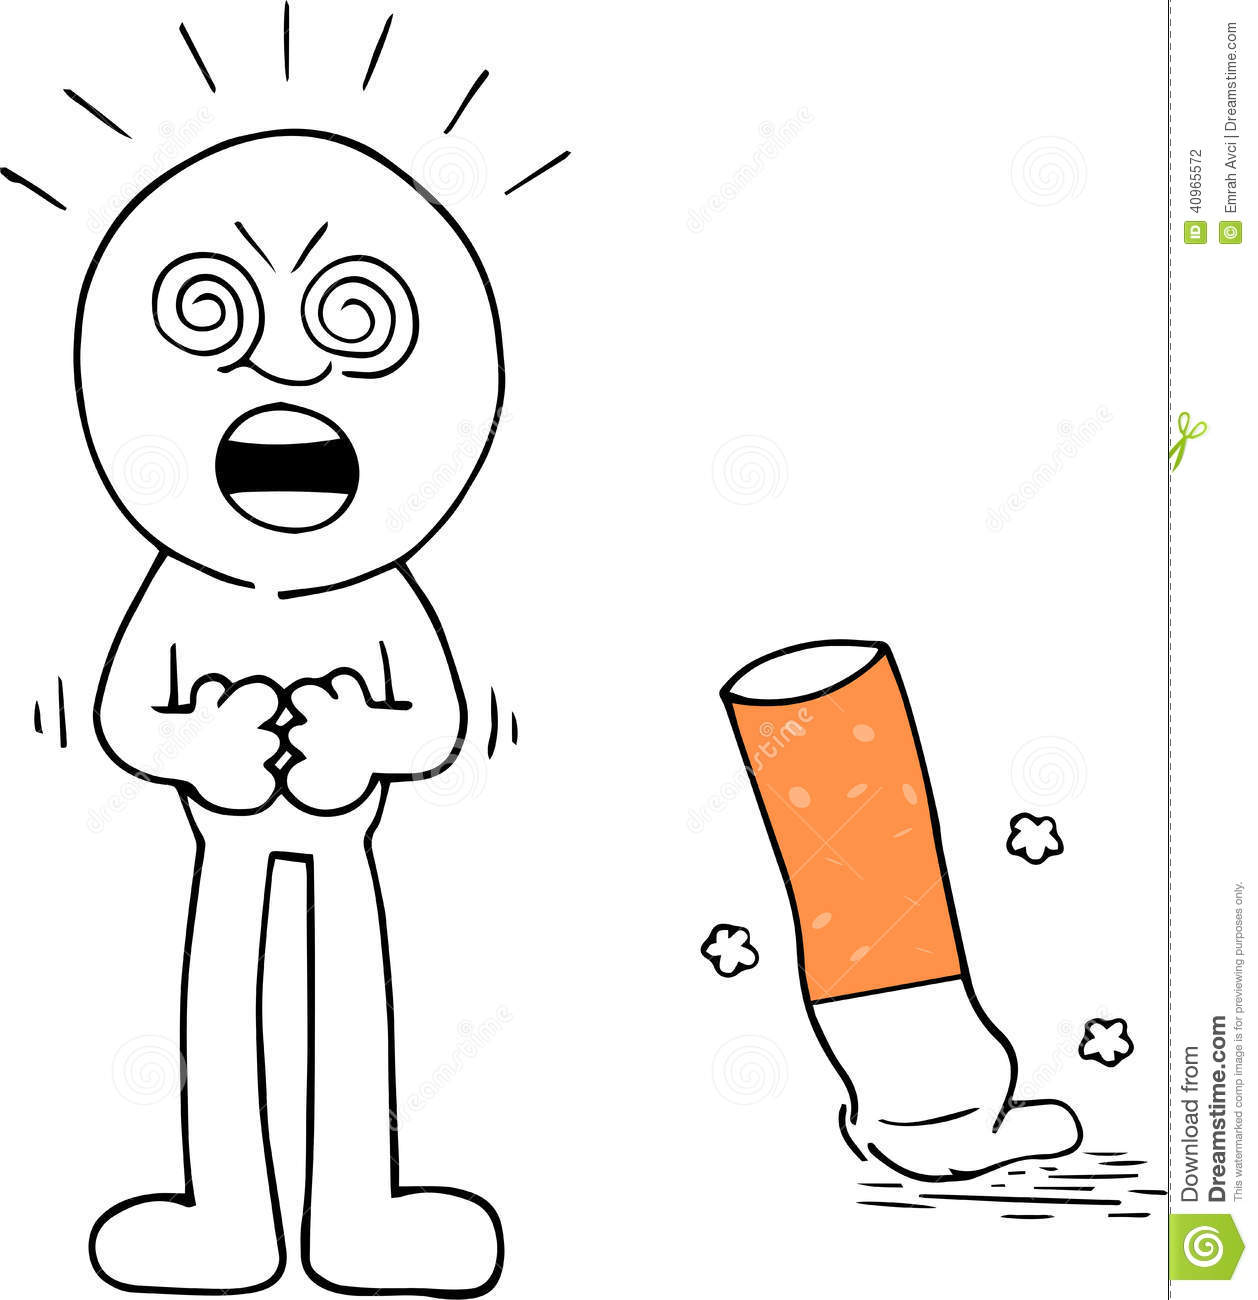 Cigarette Caricature angry man with cigarette stock illustration. illustration of